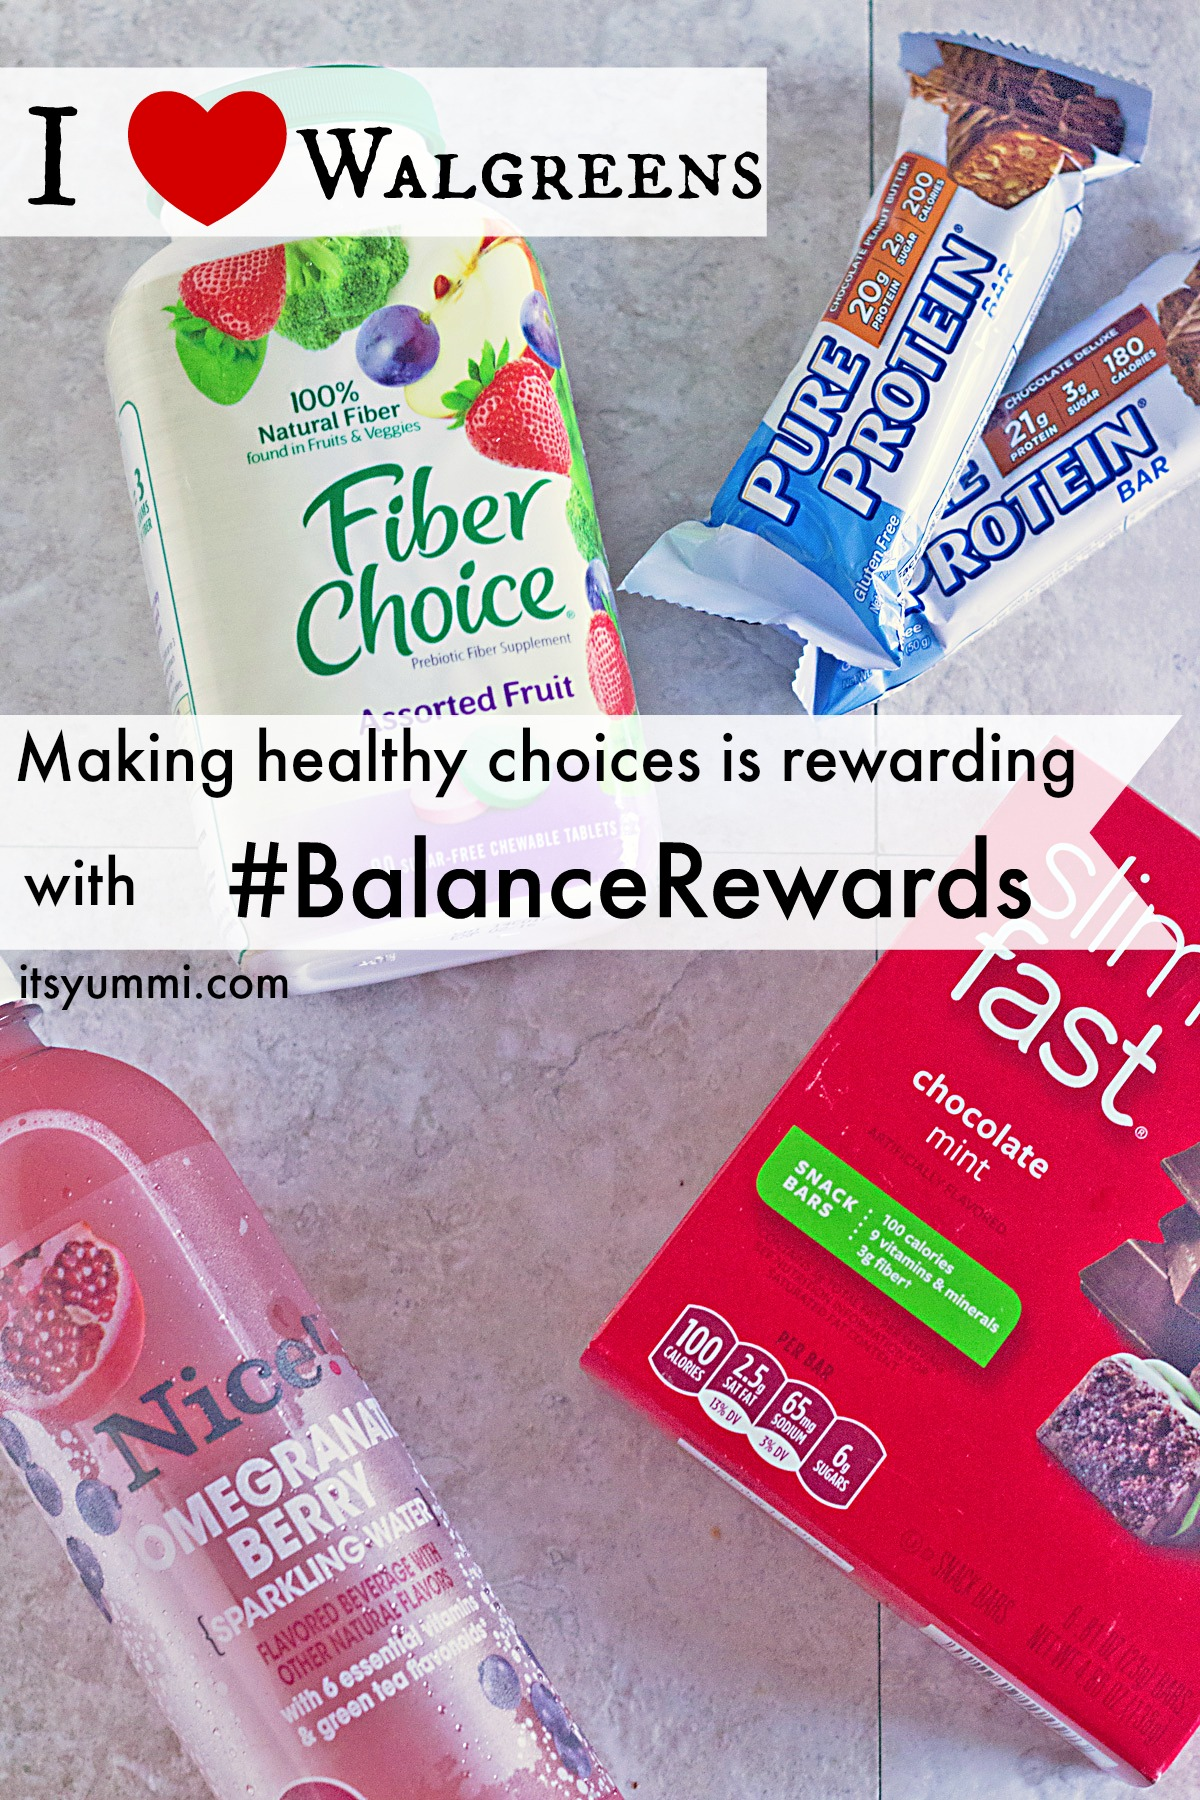 Making healthy choices is rewarding with the Walgreens #BalanceRewards app